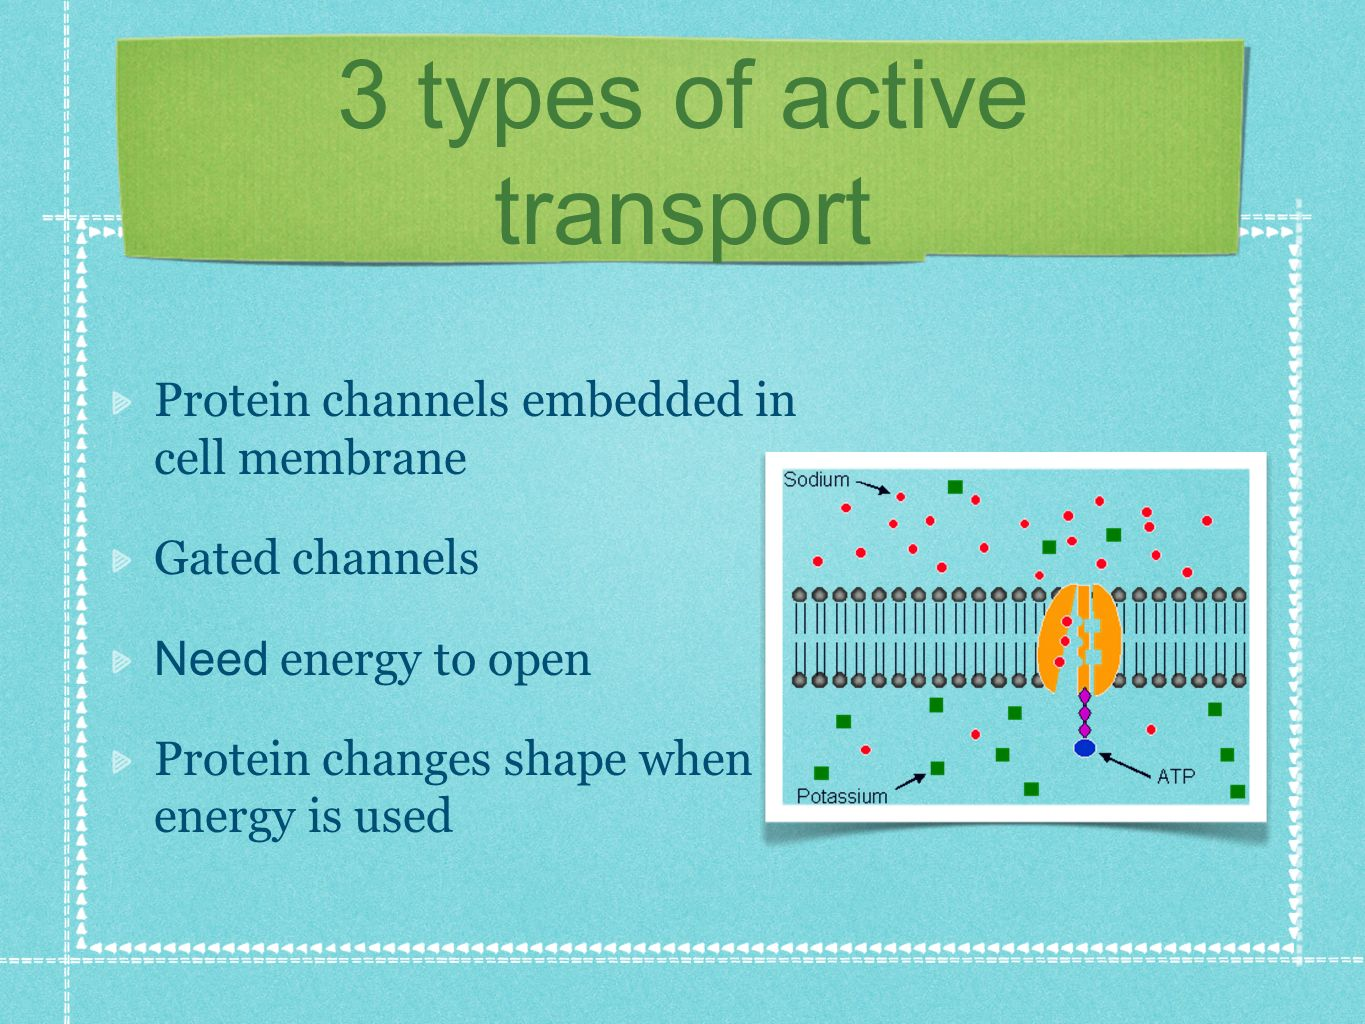 3 types of active transport